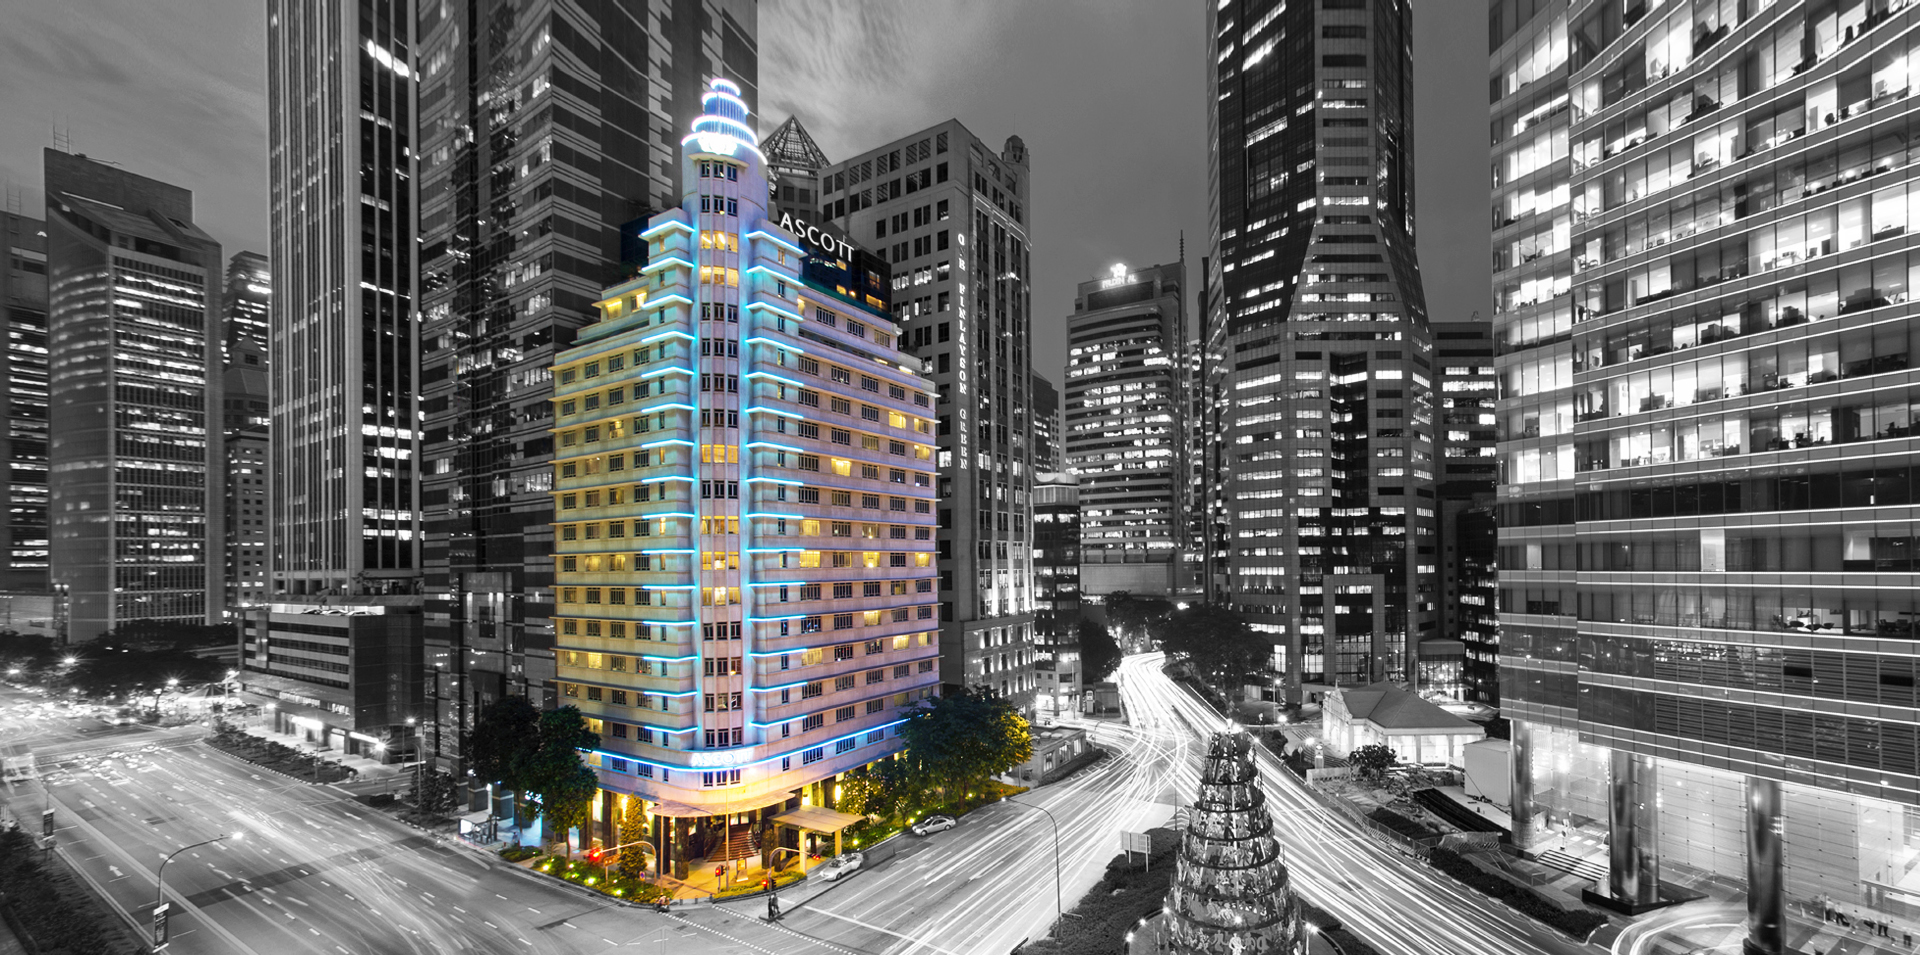 The Ascott Limited and the rise of serviced residences